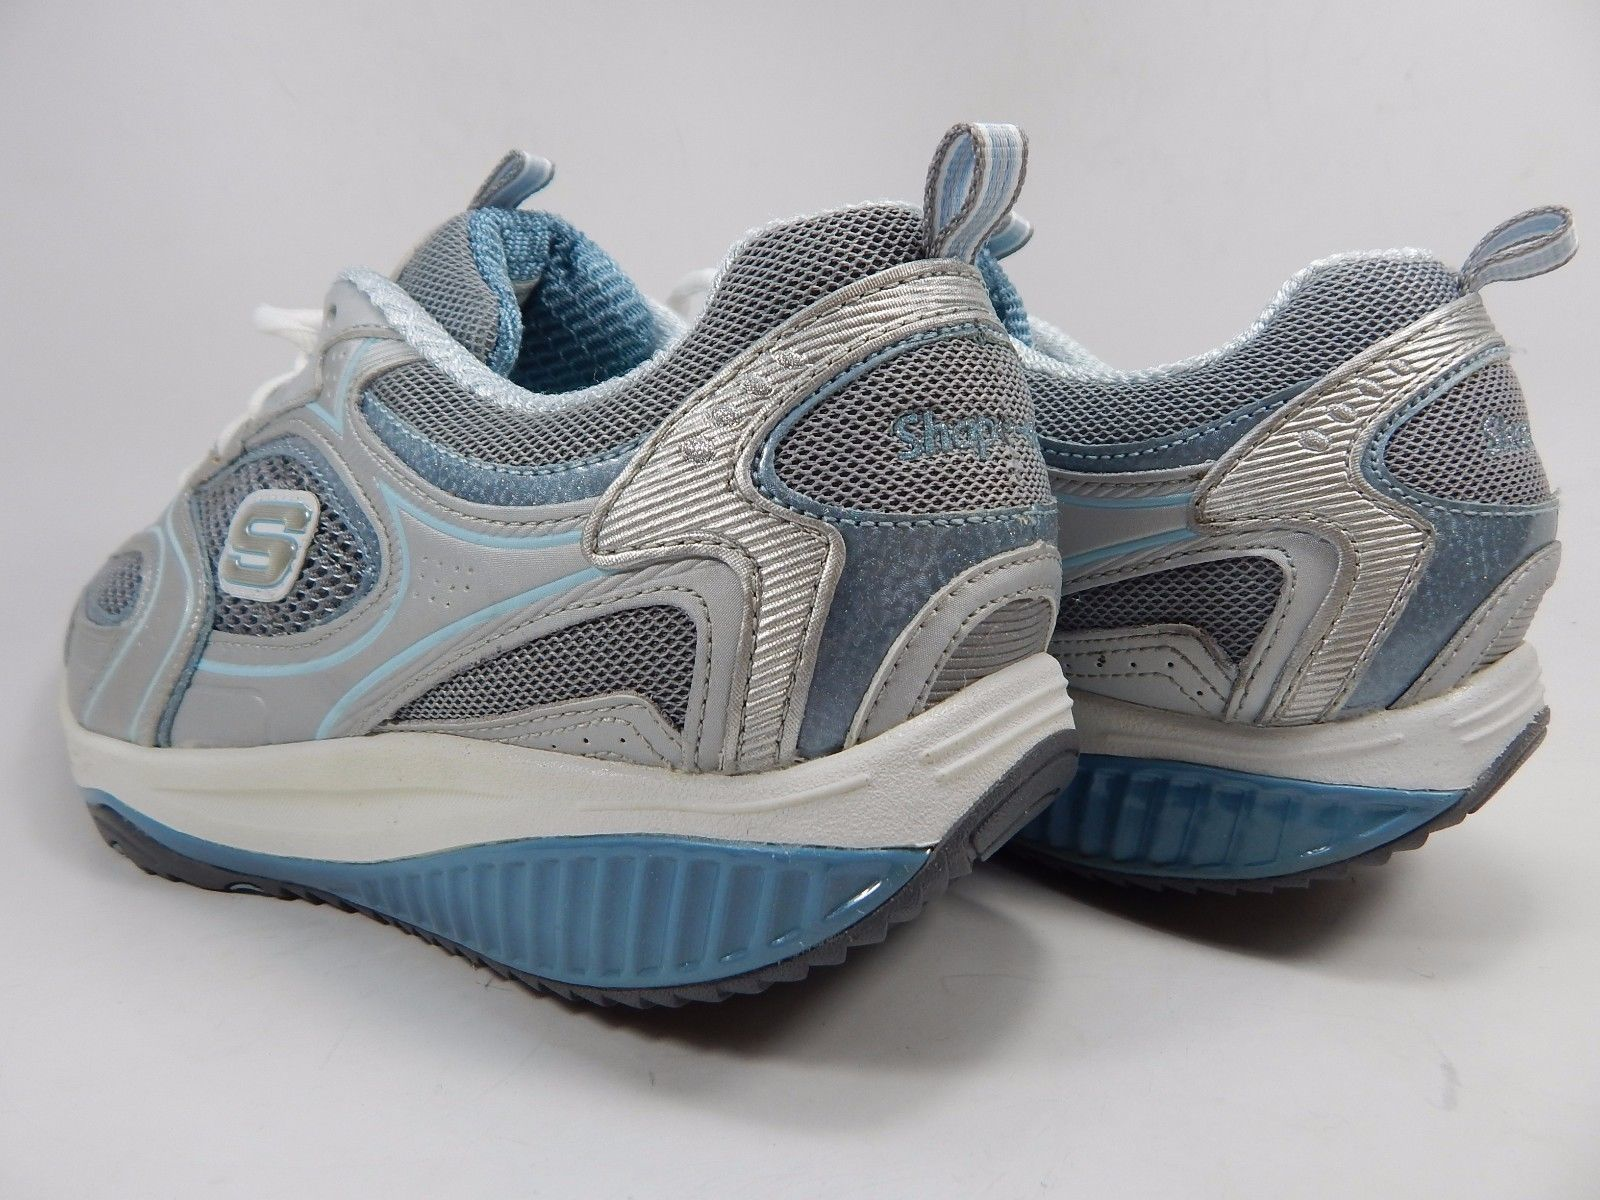 Skechers Shape Ups XF Acelerators Women's Fitness Shoes Size US 8 M (B) EU 38